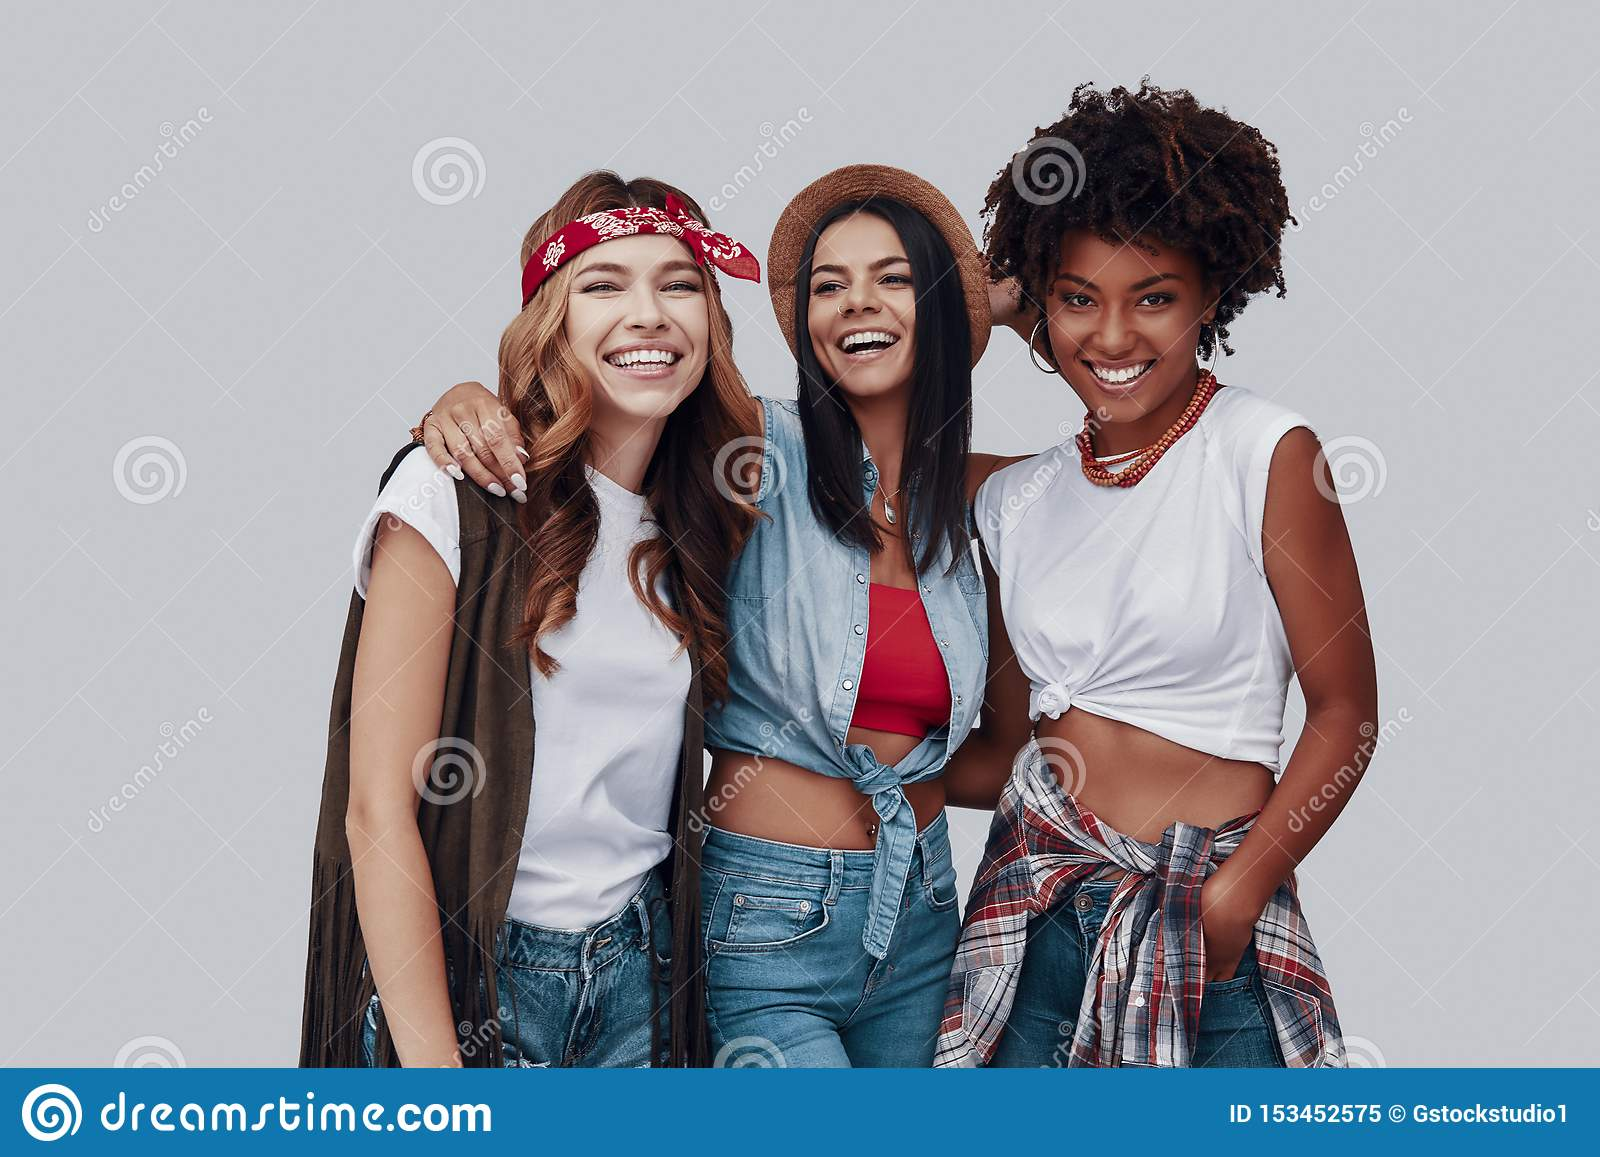 Three attractive stylish young women